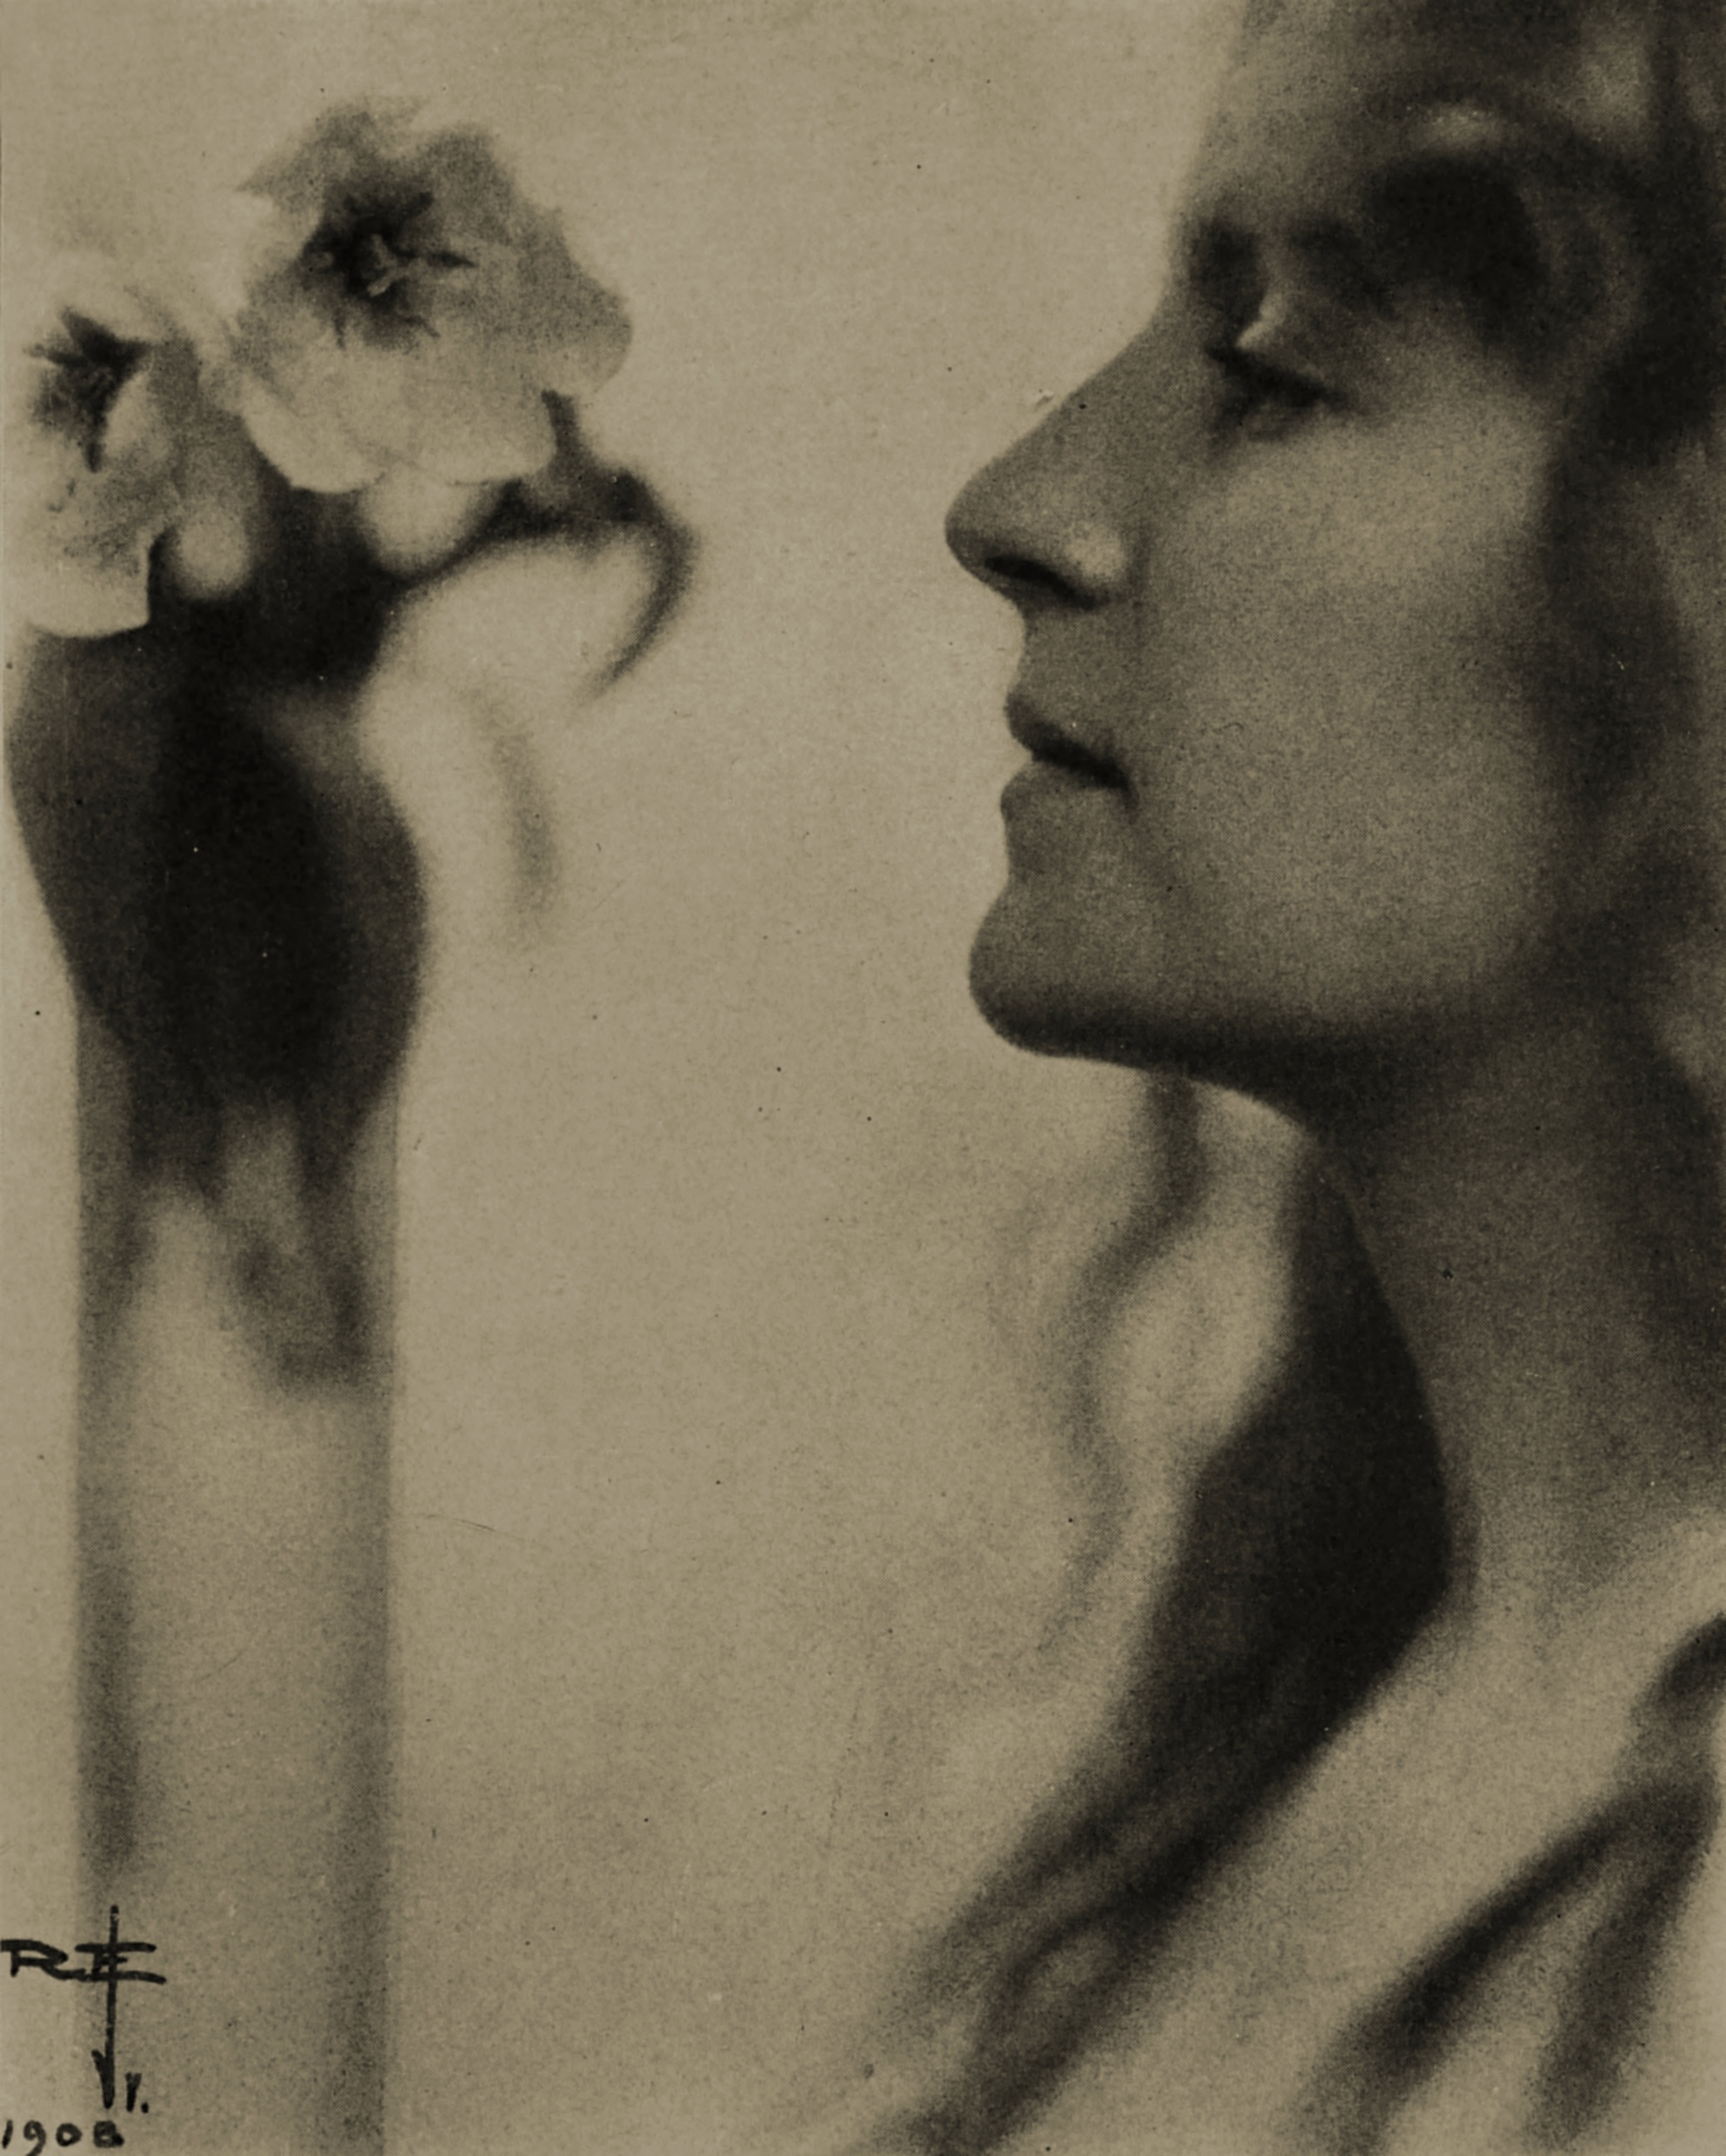 Photo for a poster by Rudolph Eickemeyer 1908